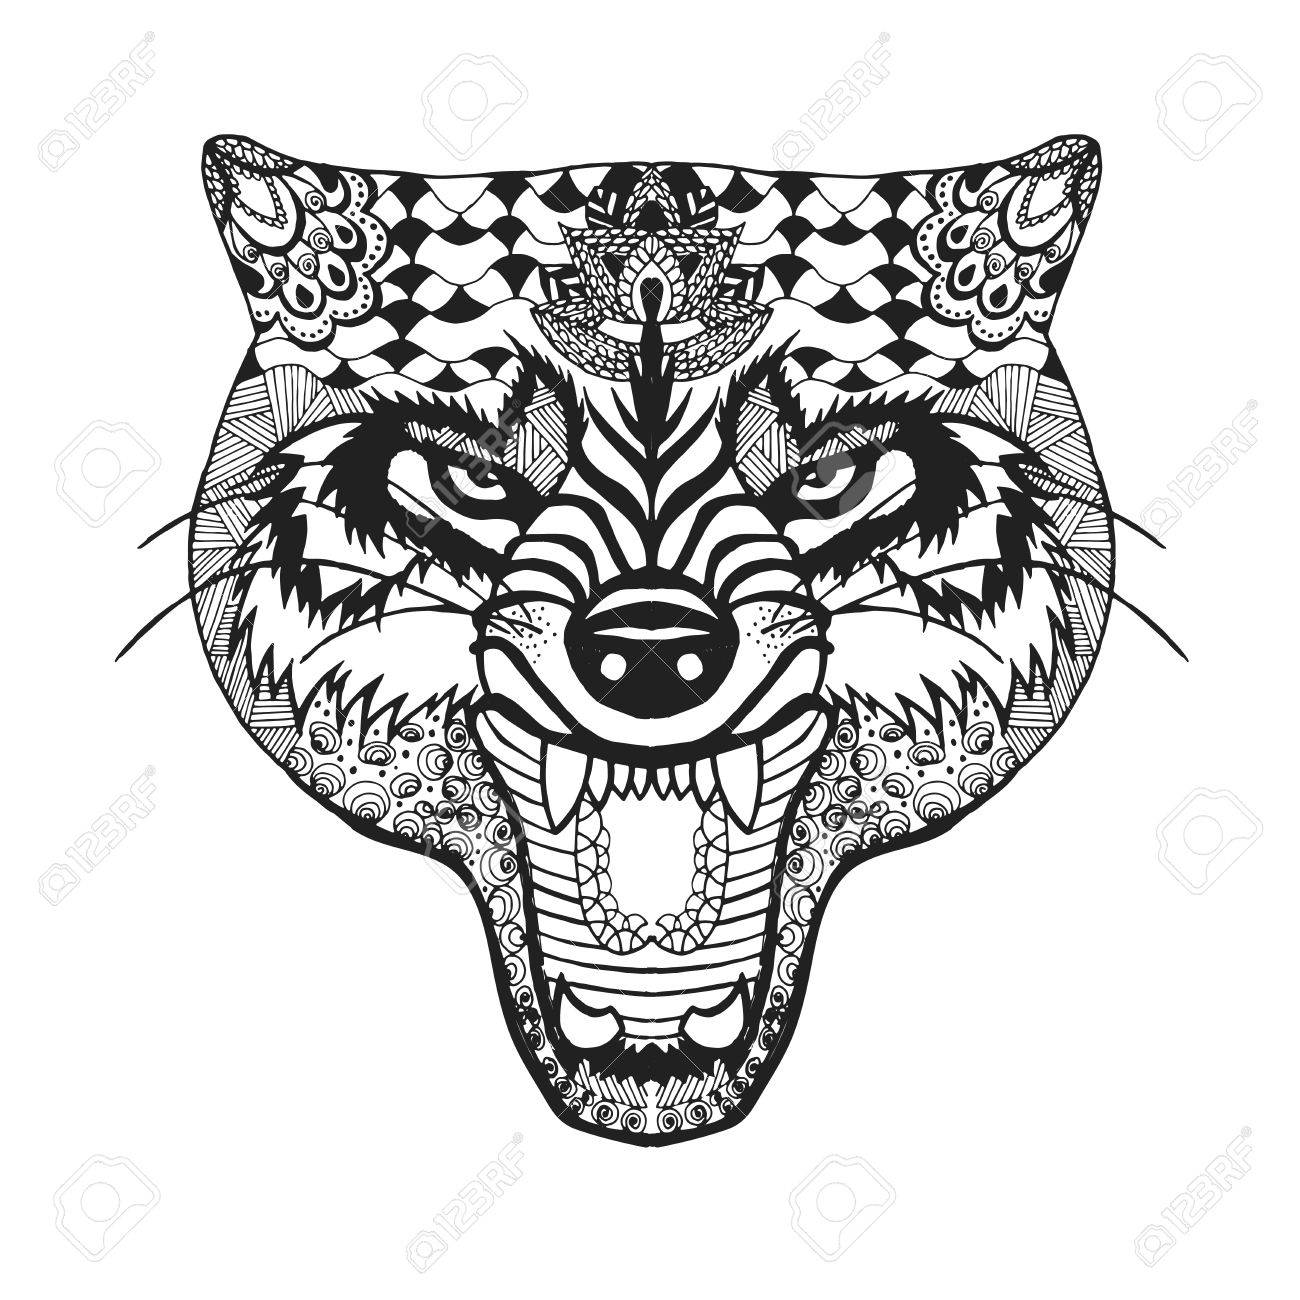 1300x1300 Stylized Roaring Wolf Sketch For Avatar Royalty Free Cliparts